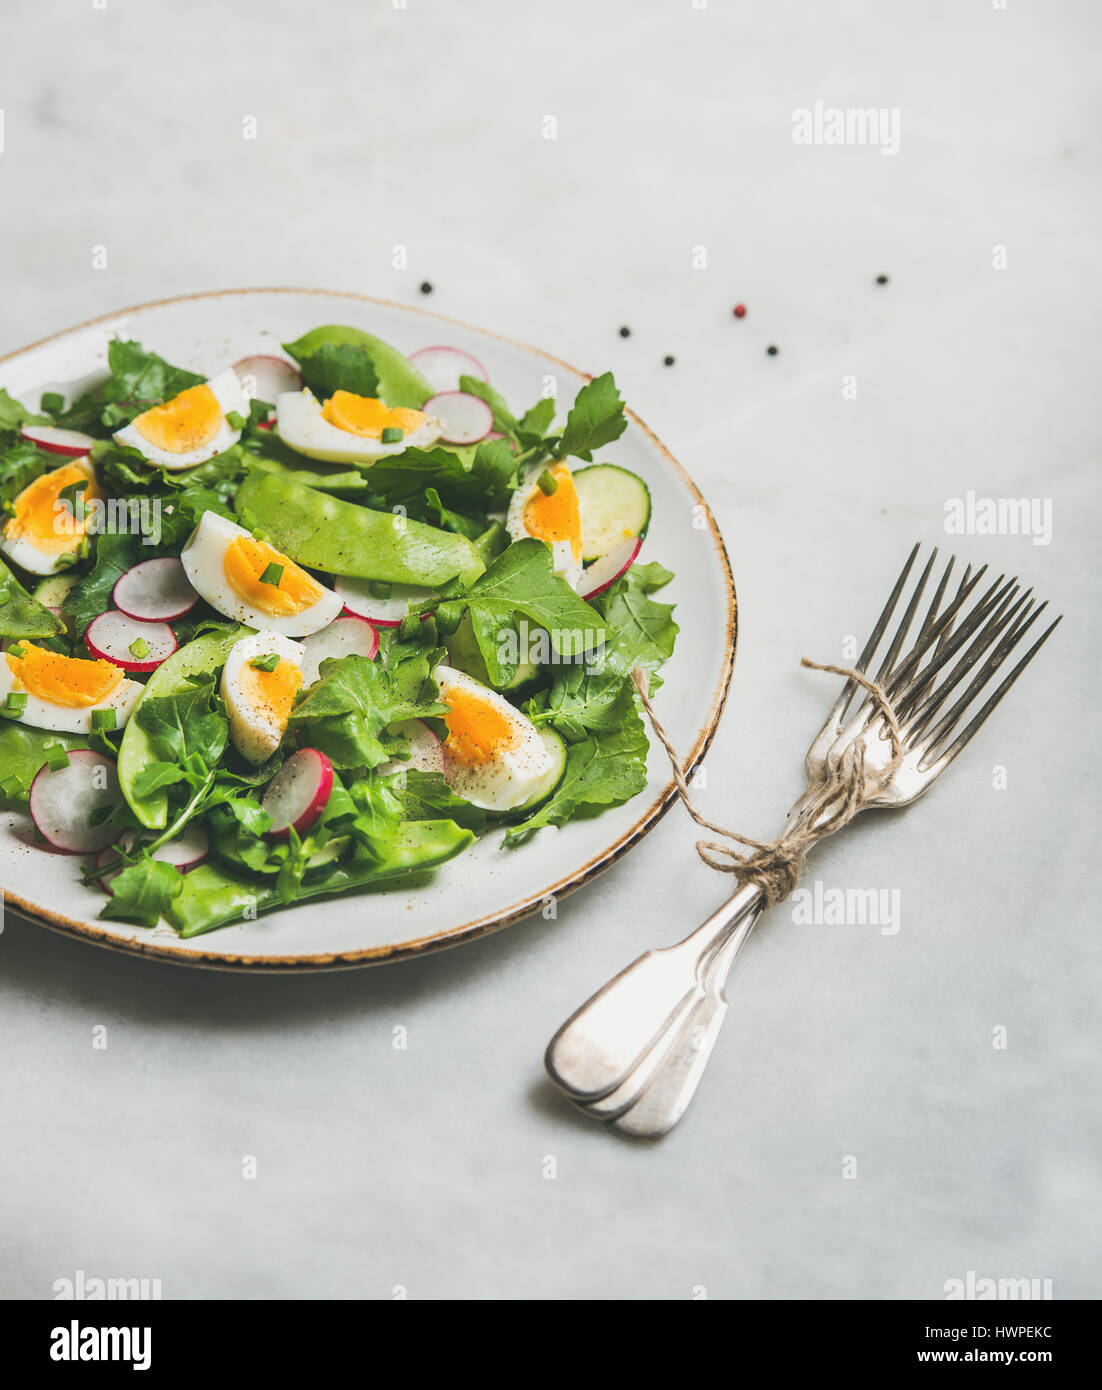 Healthy spring green salad with vegetables, pea and egg - Stock Image